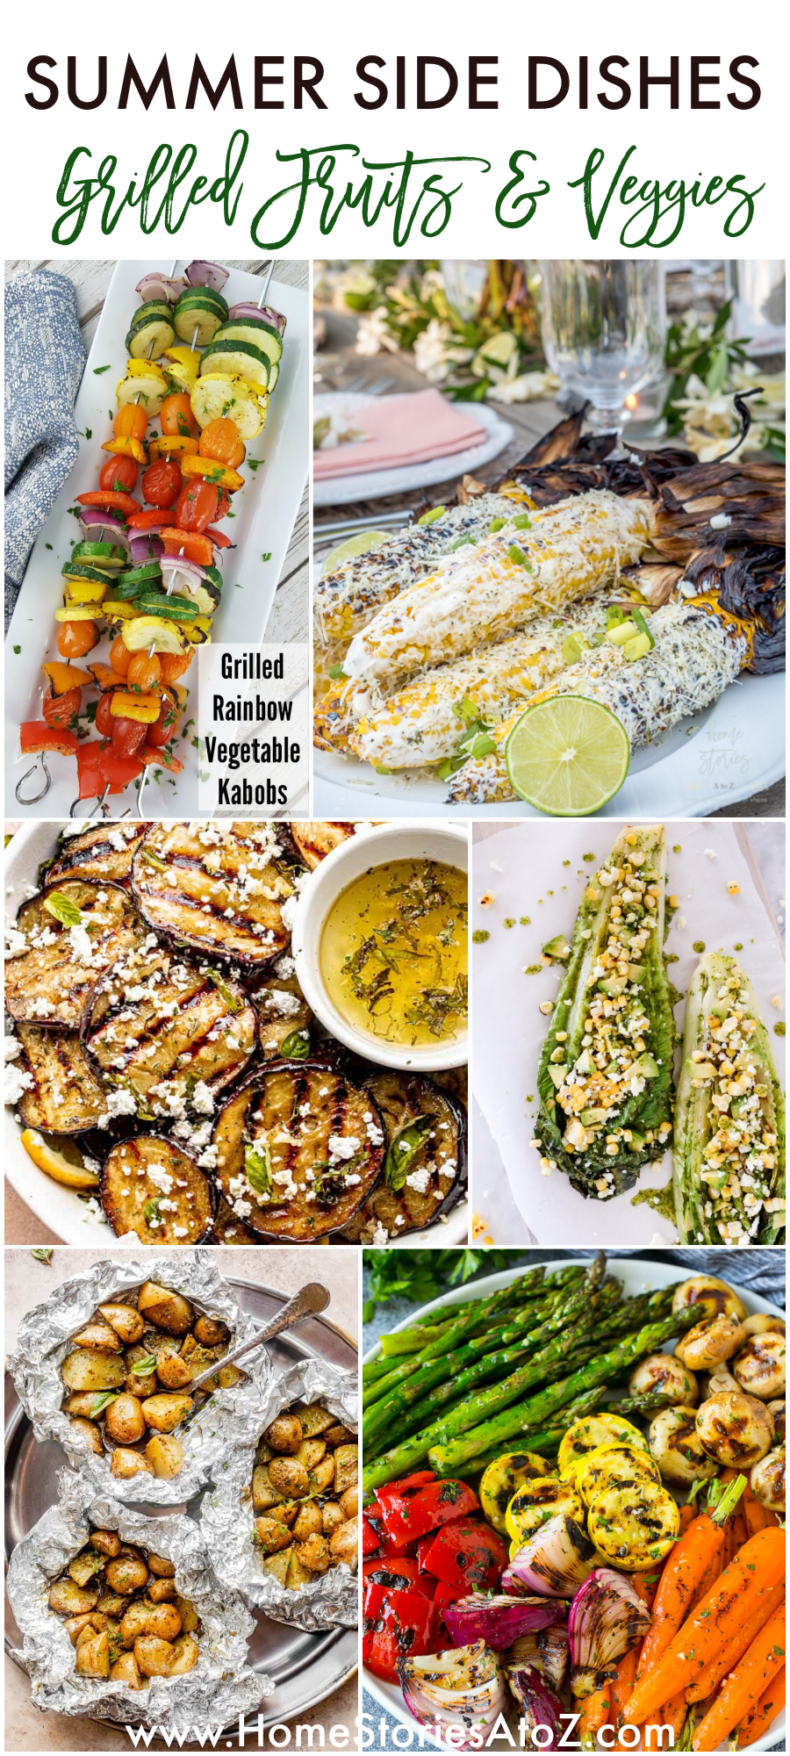 Grilled Vegetable and Fruit Recipes